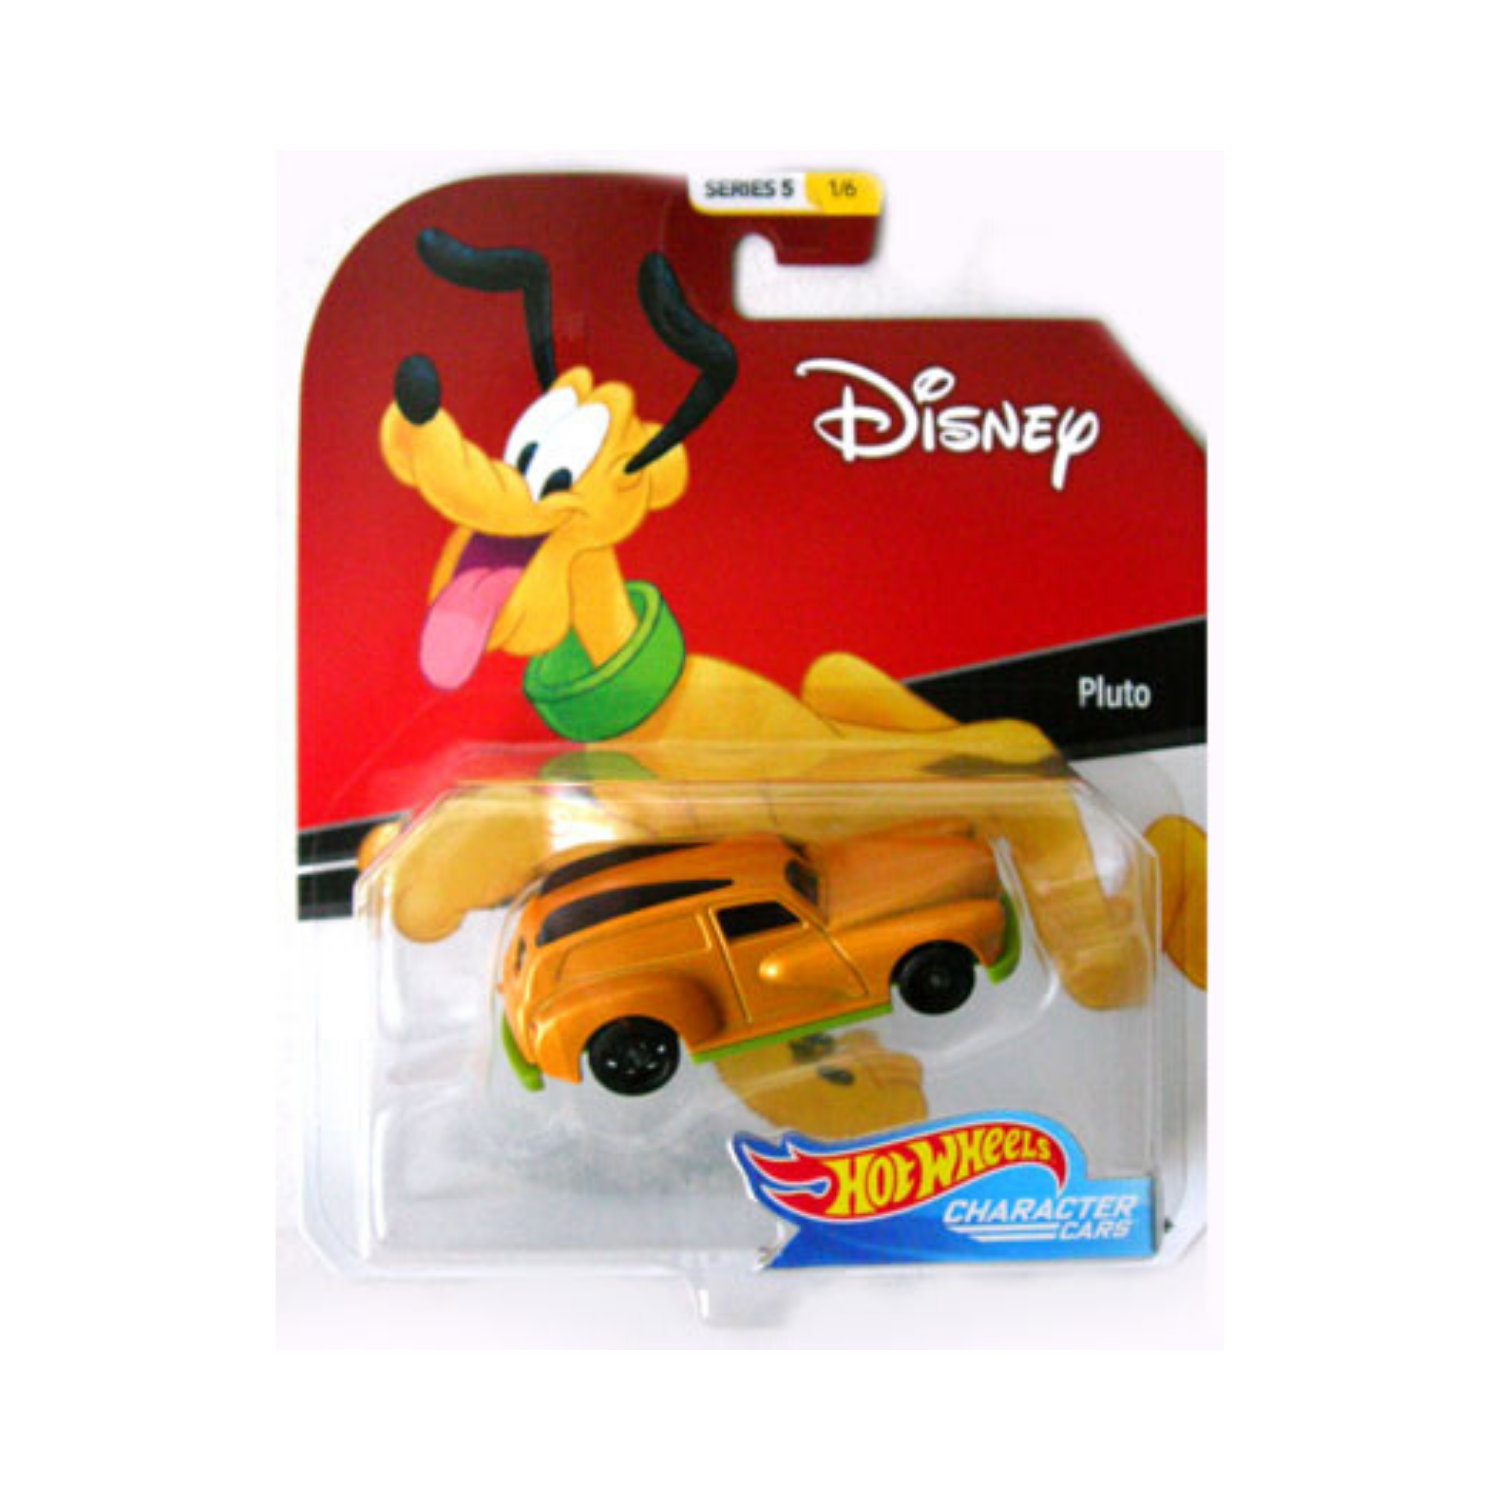 Disney Hot Wheels Character Cars | Pluto